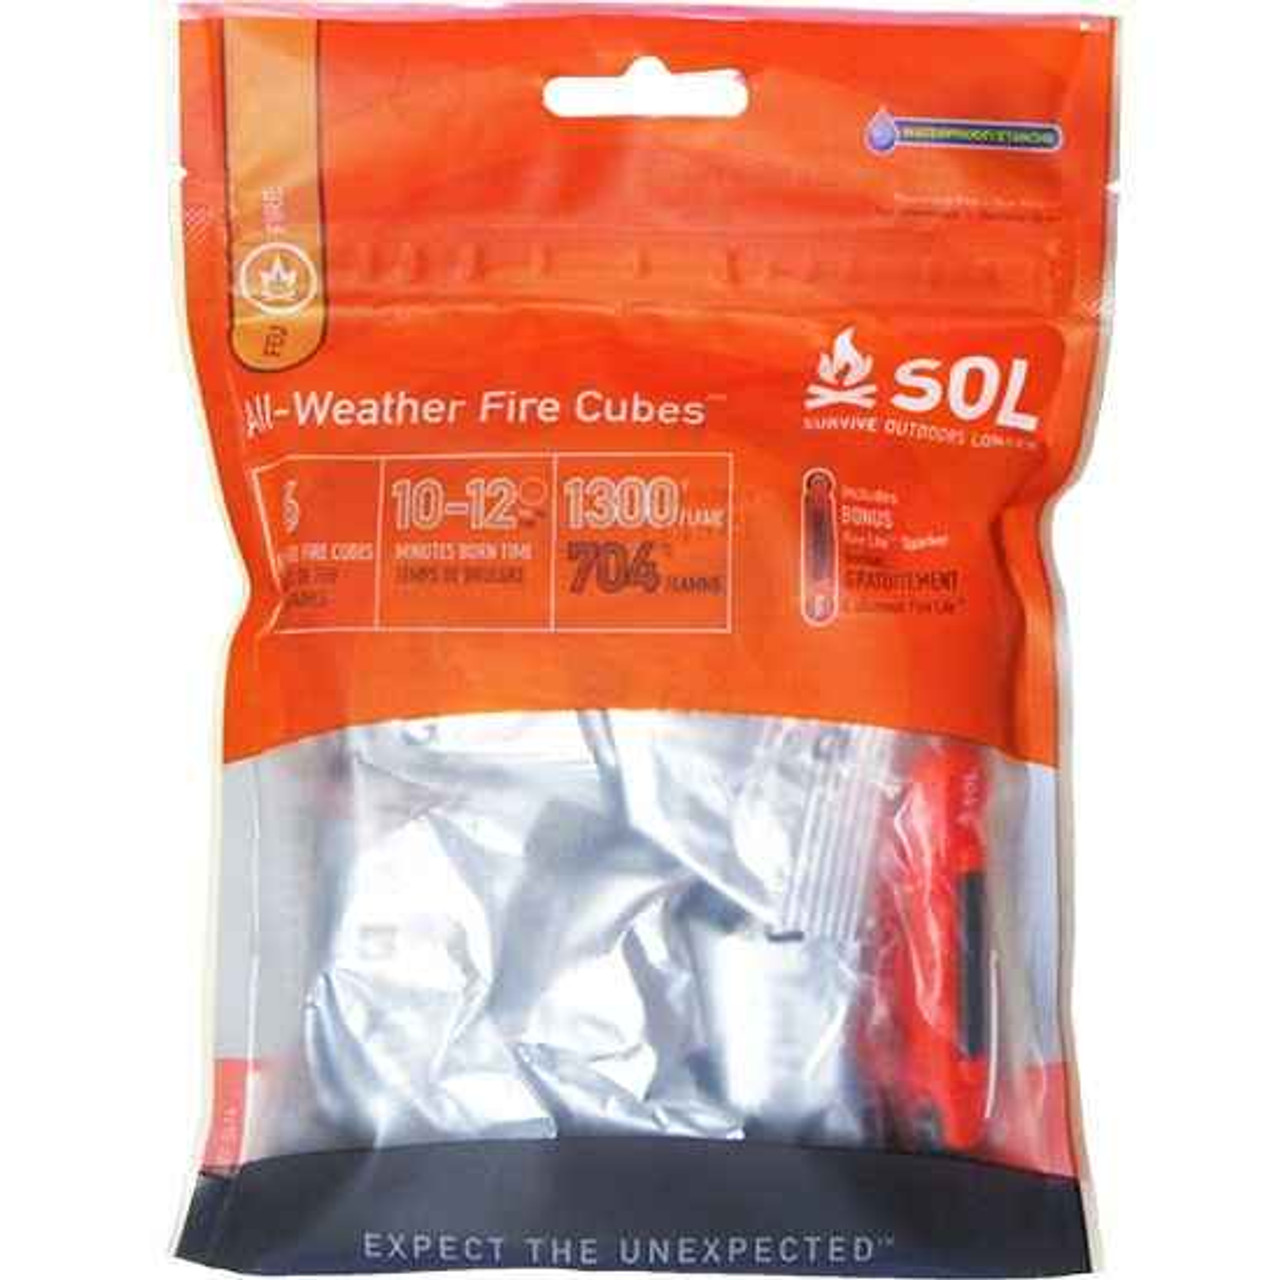 Adventure AD1240 Medical Kits SOL All-Weather Fire Cubes